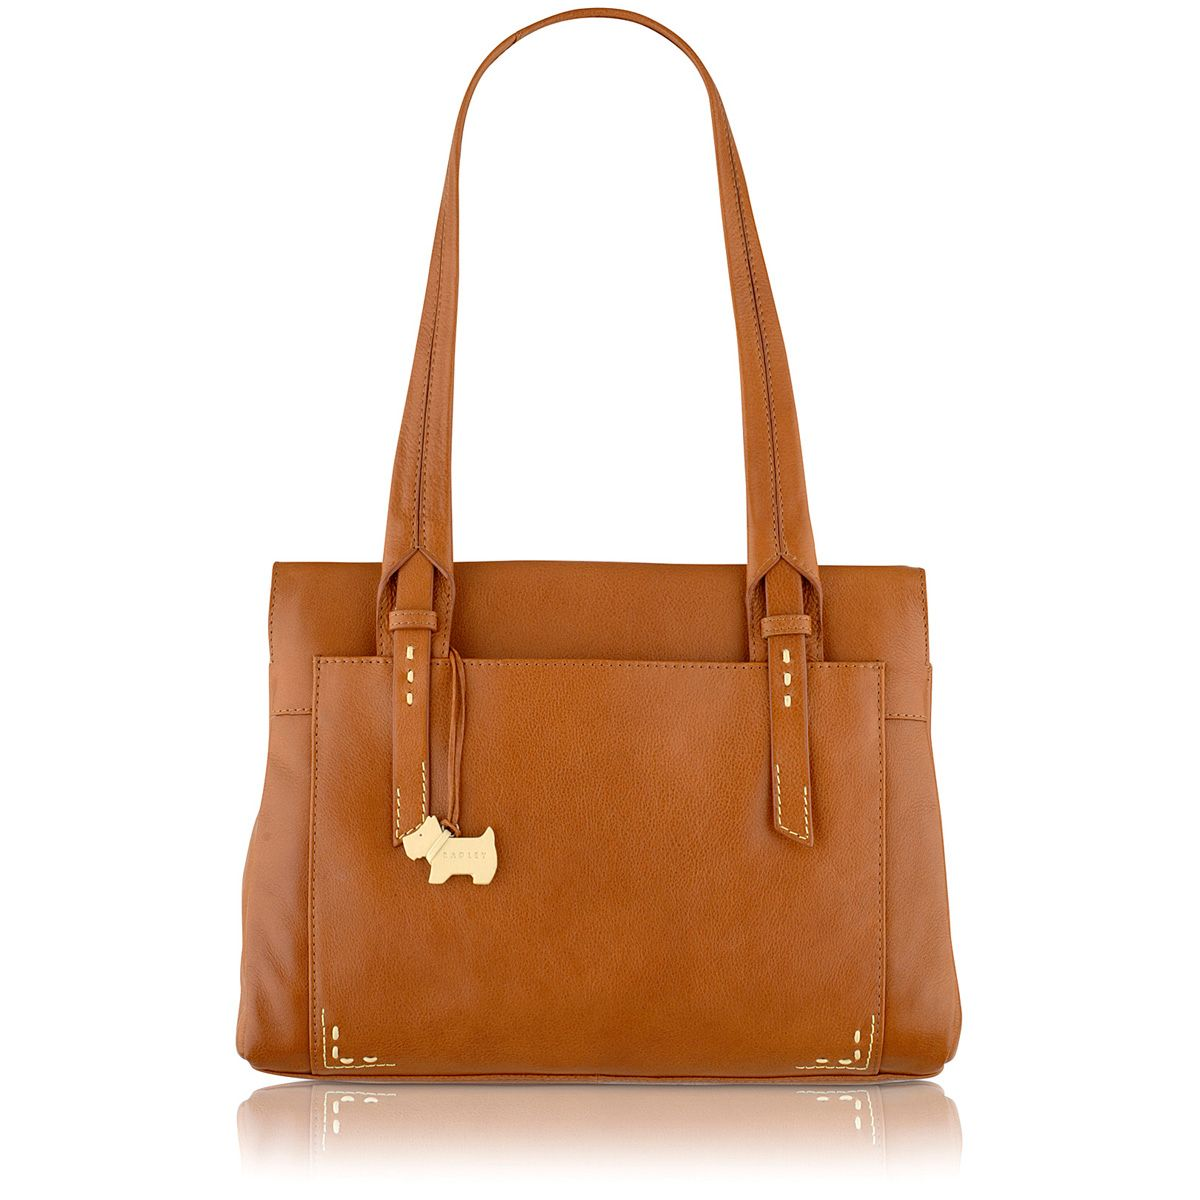 Barnsley tan medium shoulder bag